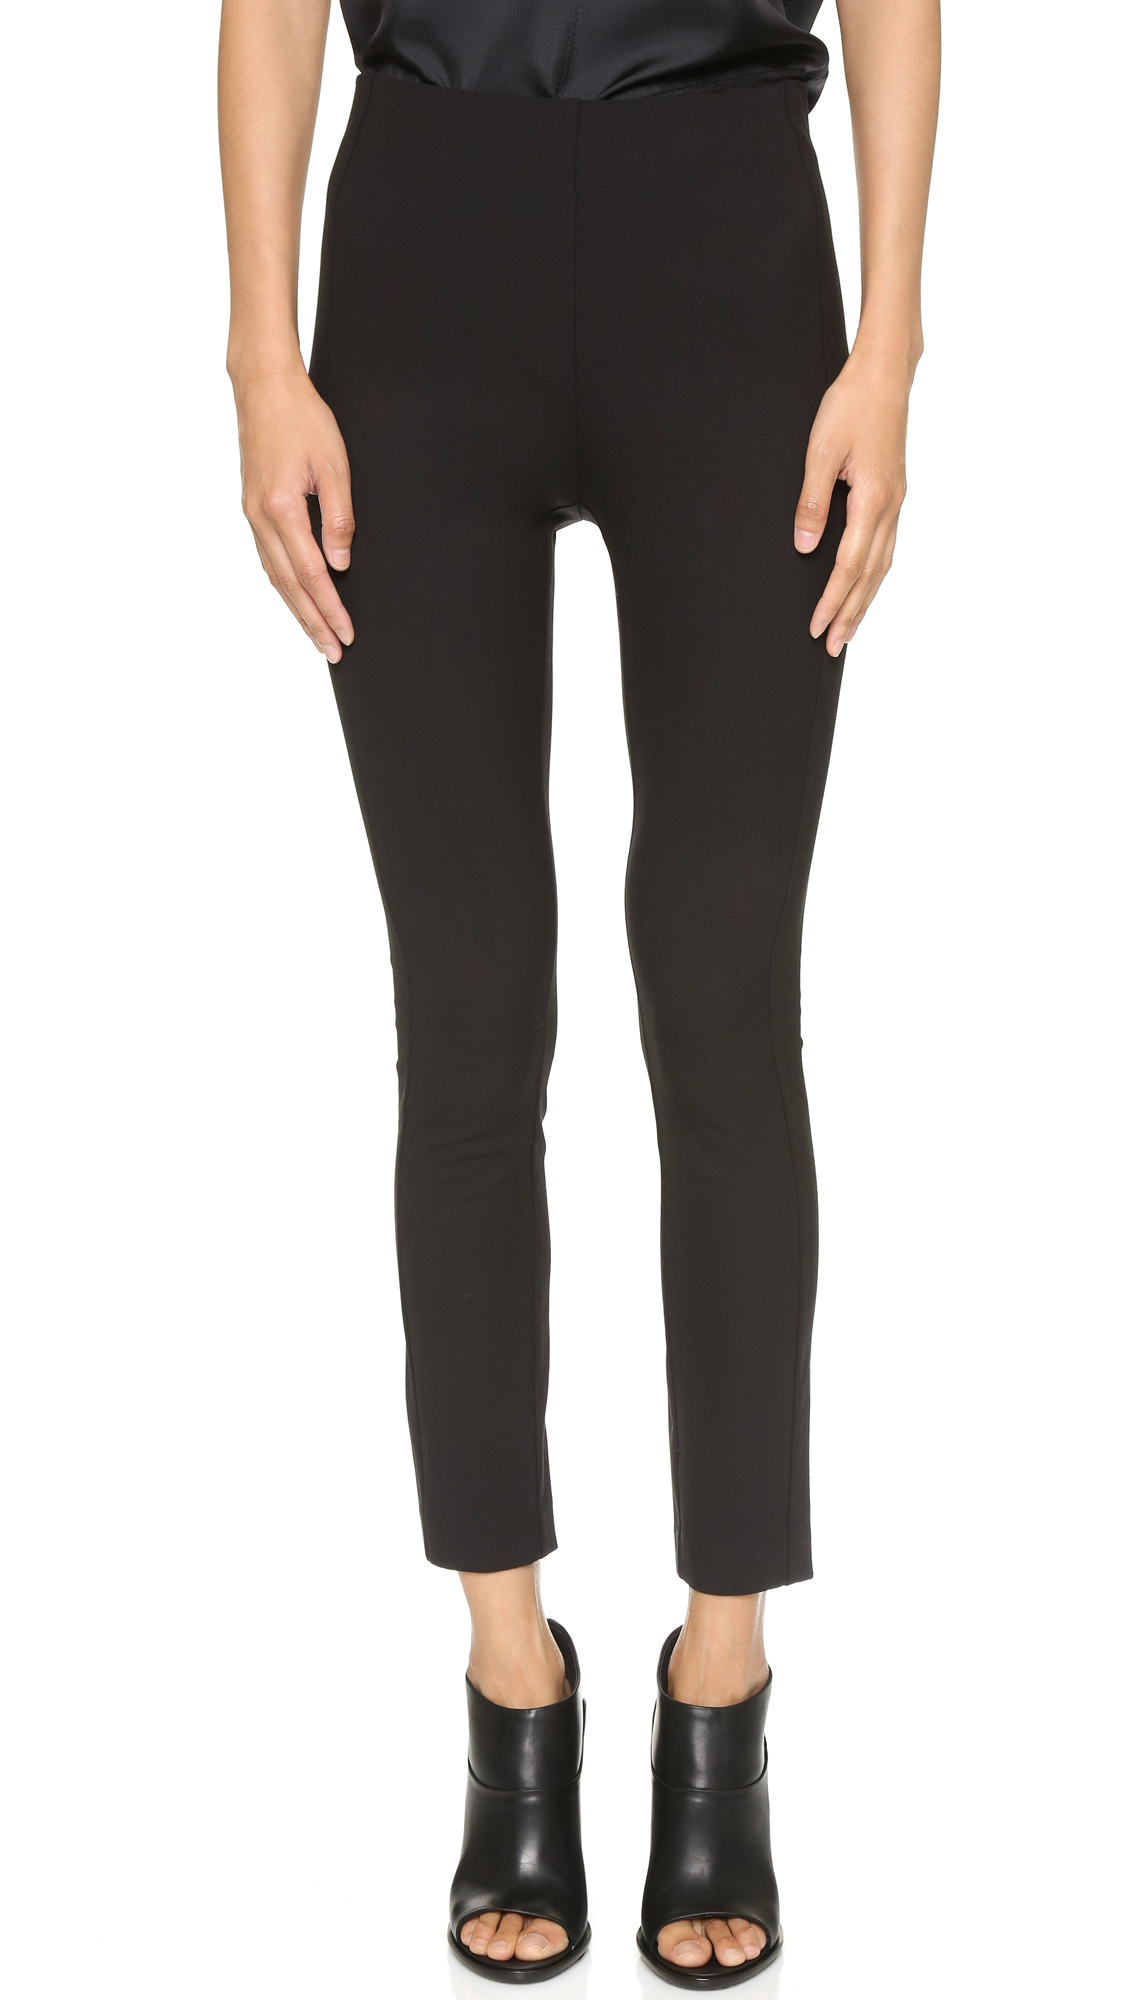 Olive Skinny Jeans Womens